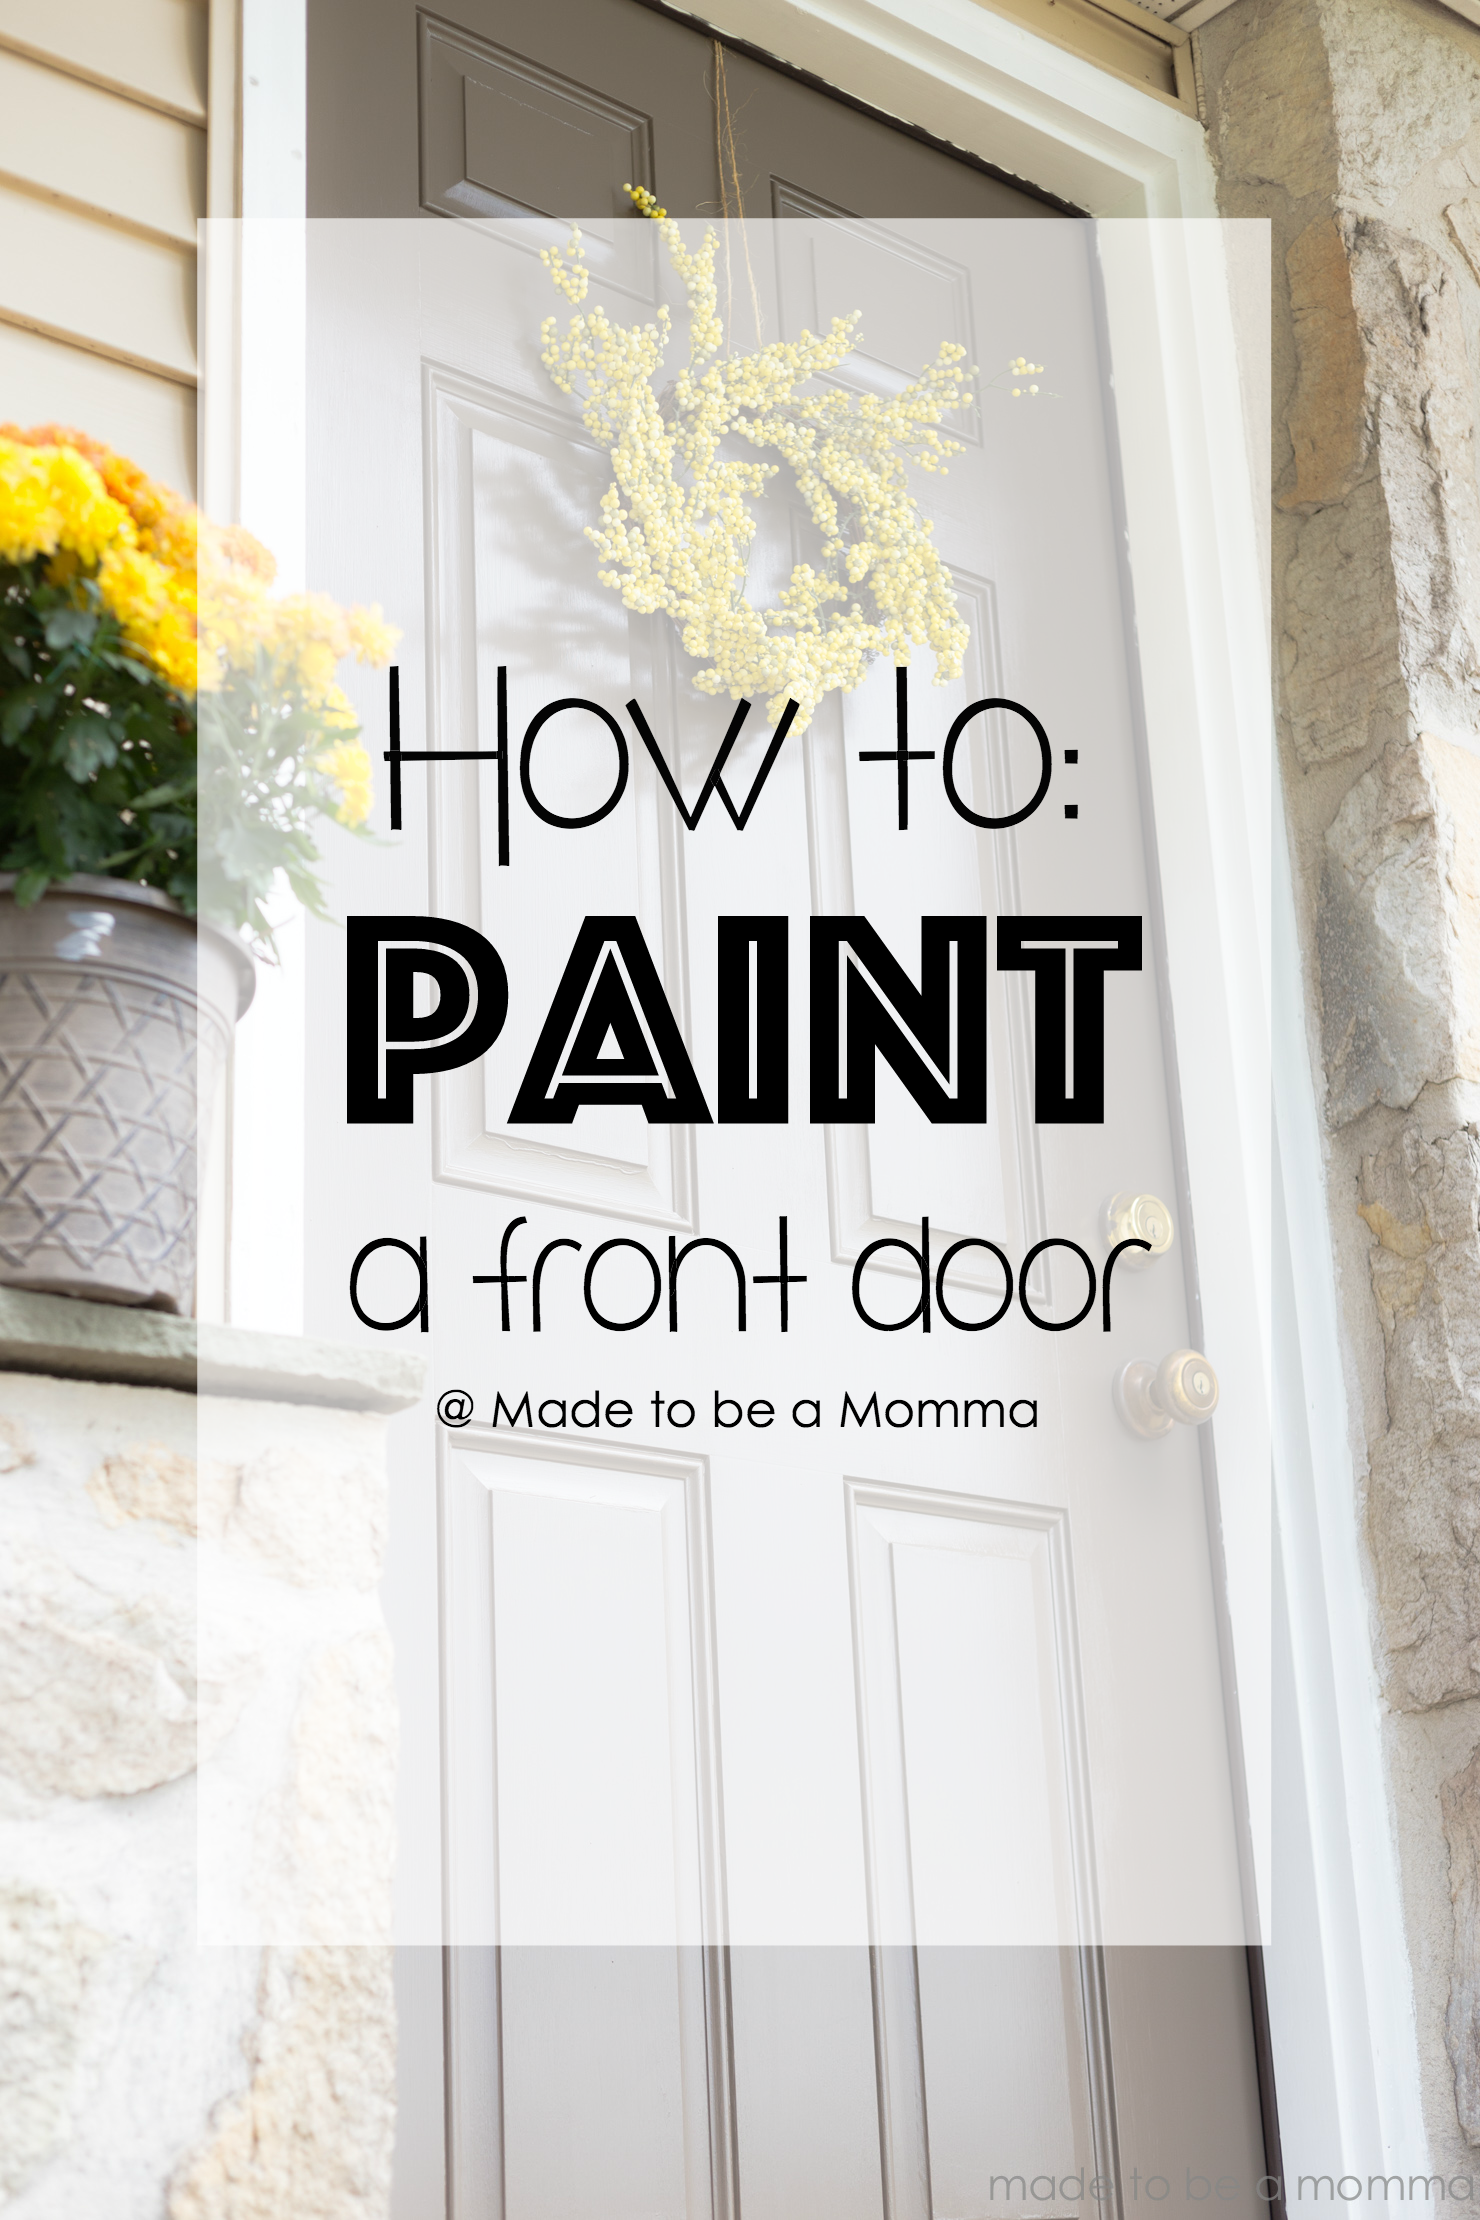 How to Paint a front Door: 5 easy steps at madetobeamomma.com